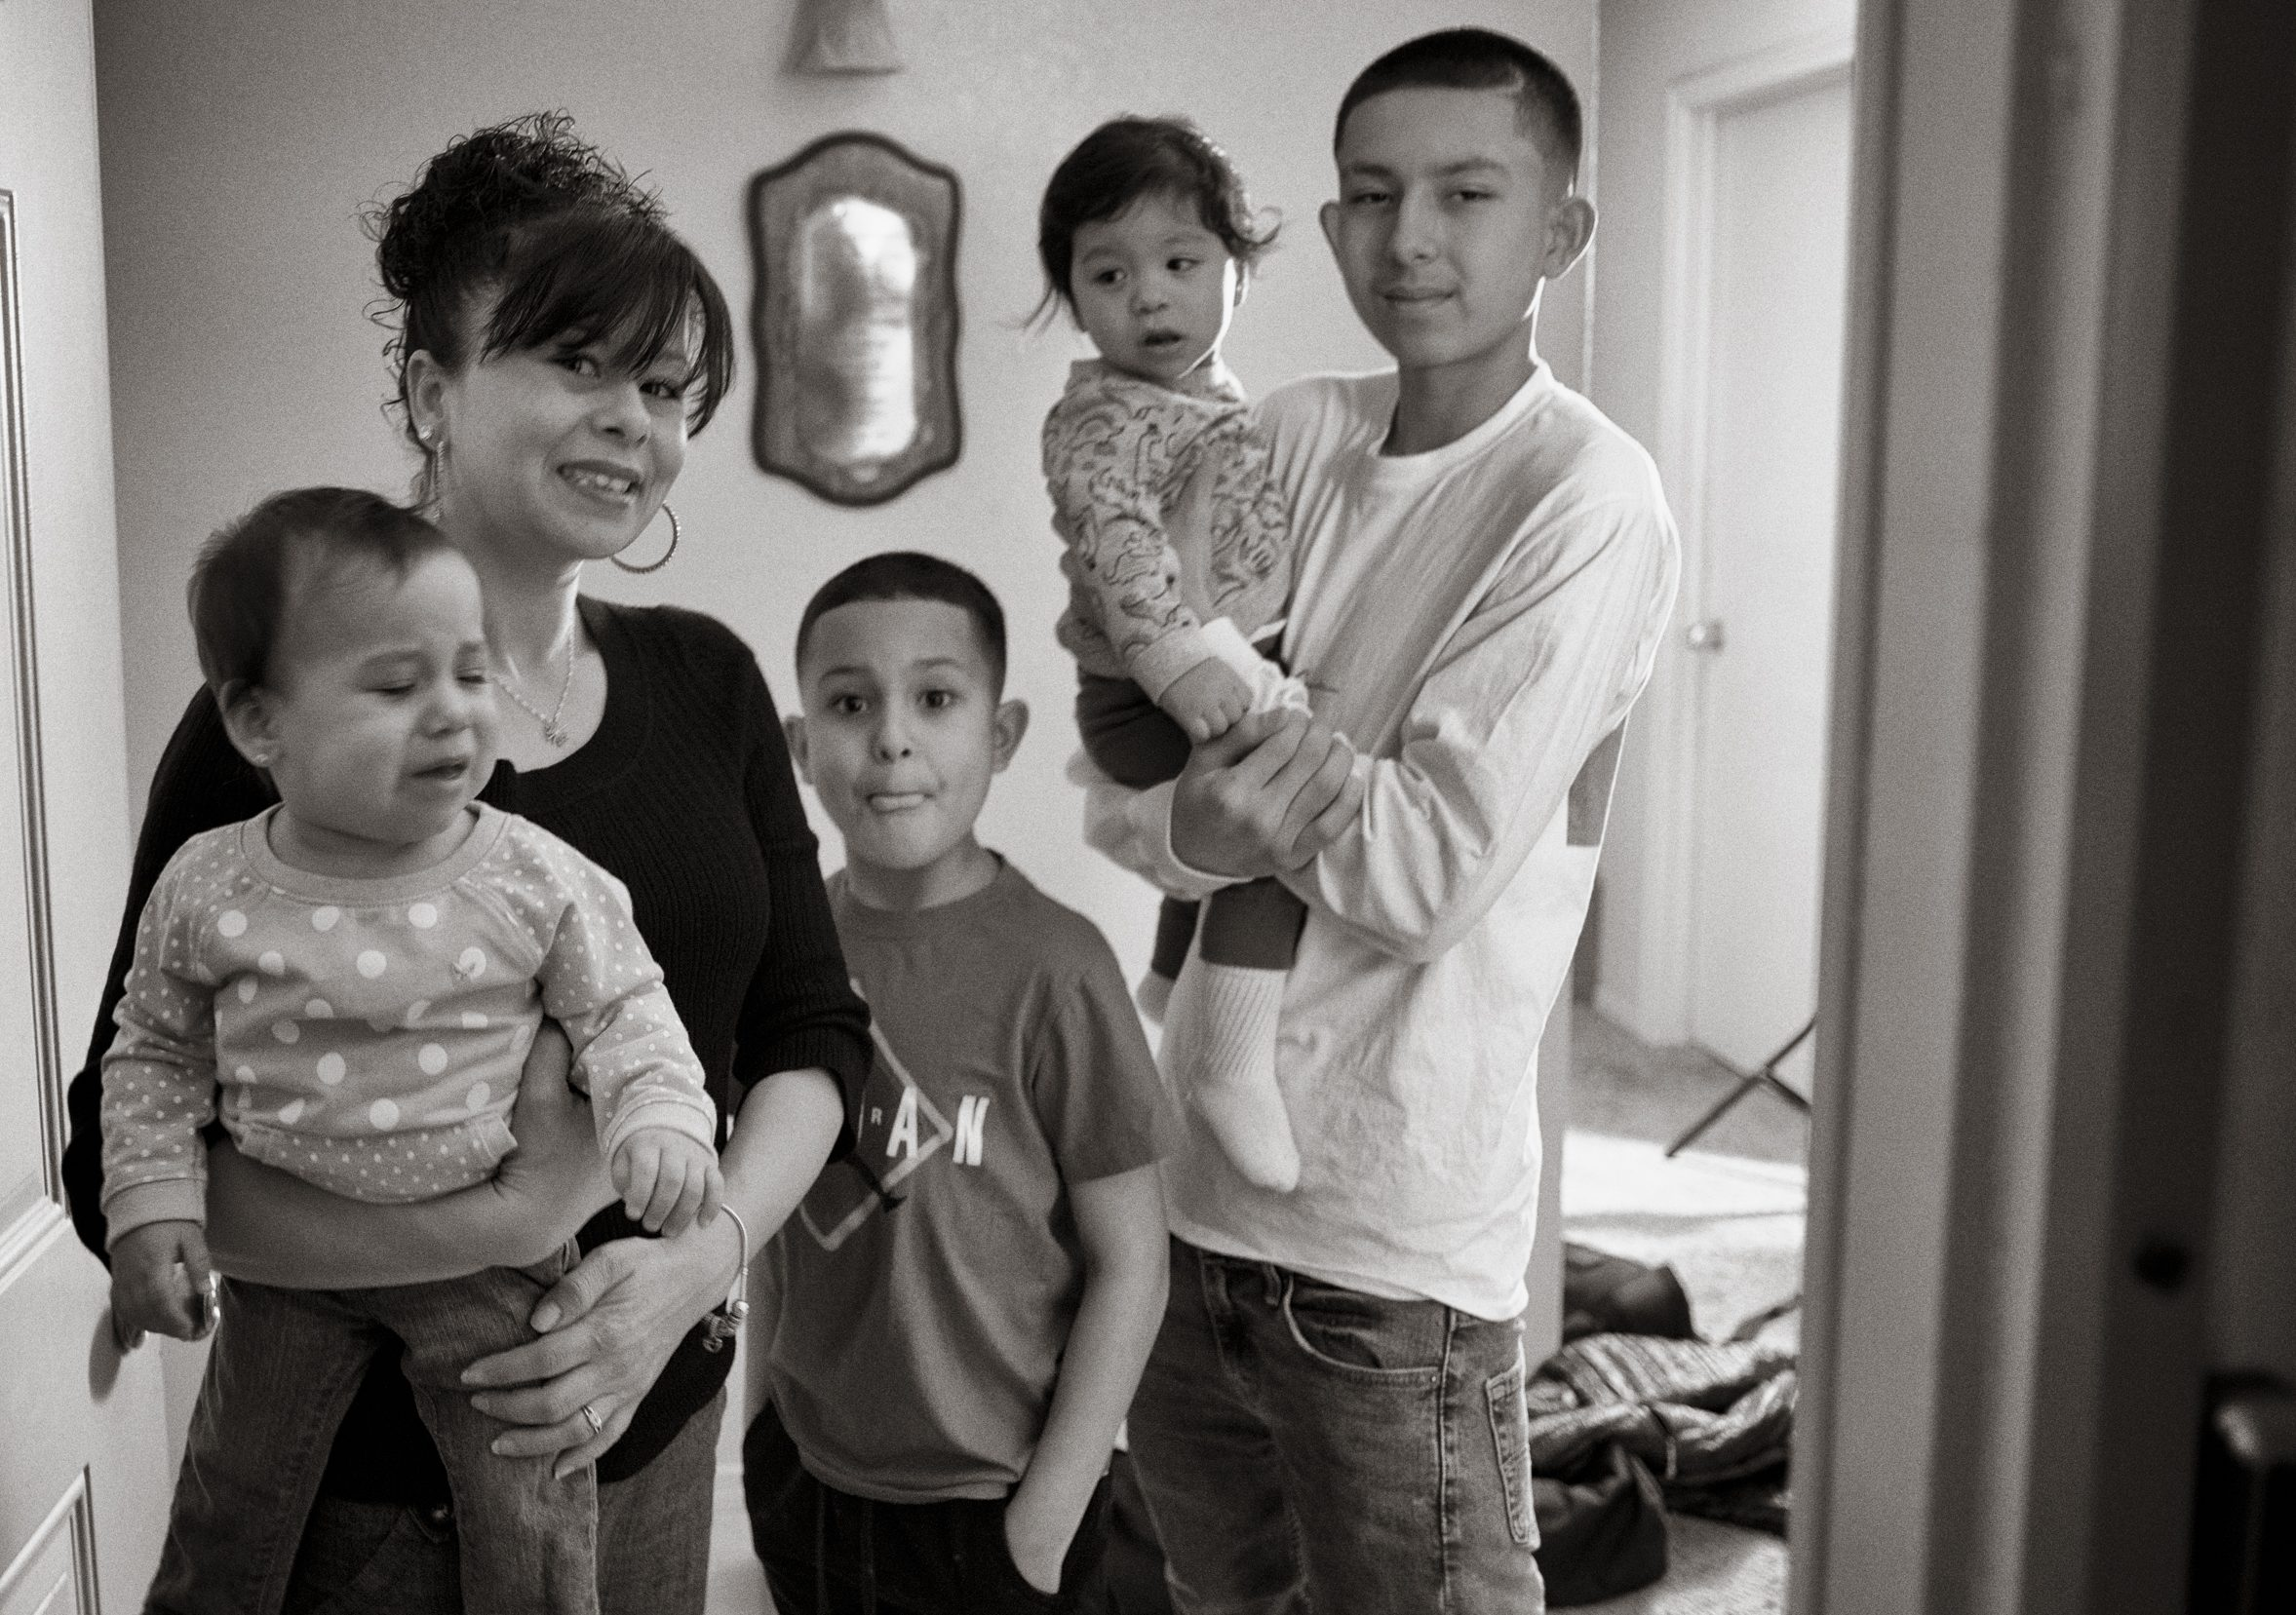 Frankie with her sons Joedamien,15, and Enrique, 9, and 1-year-old twins Adam and Dyna.